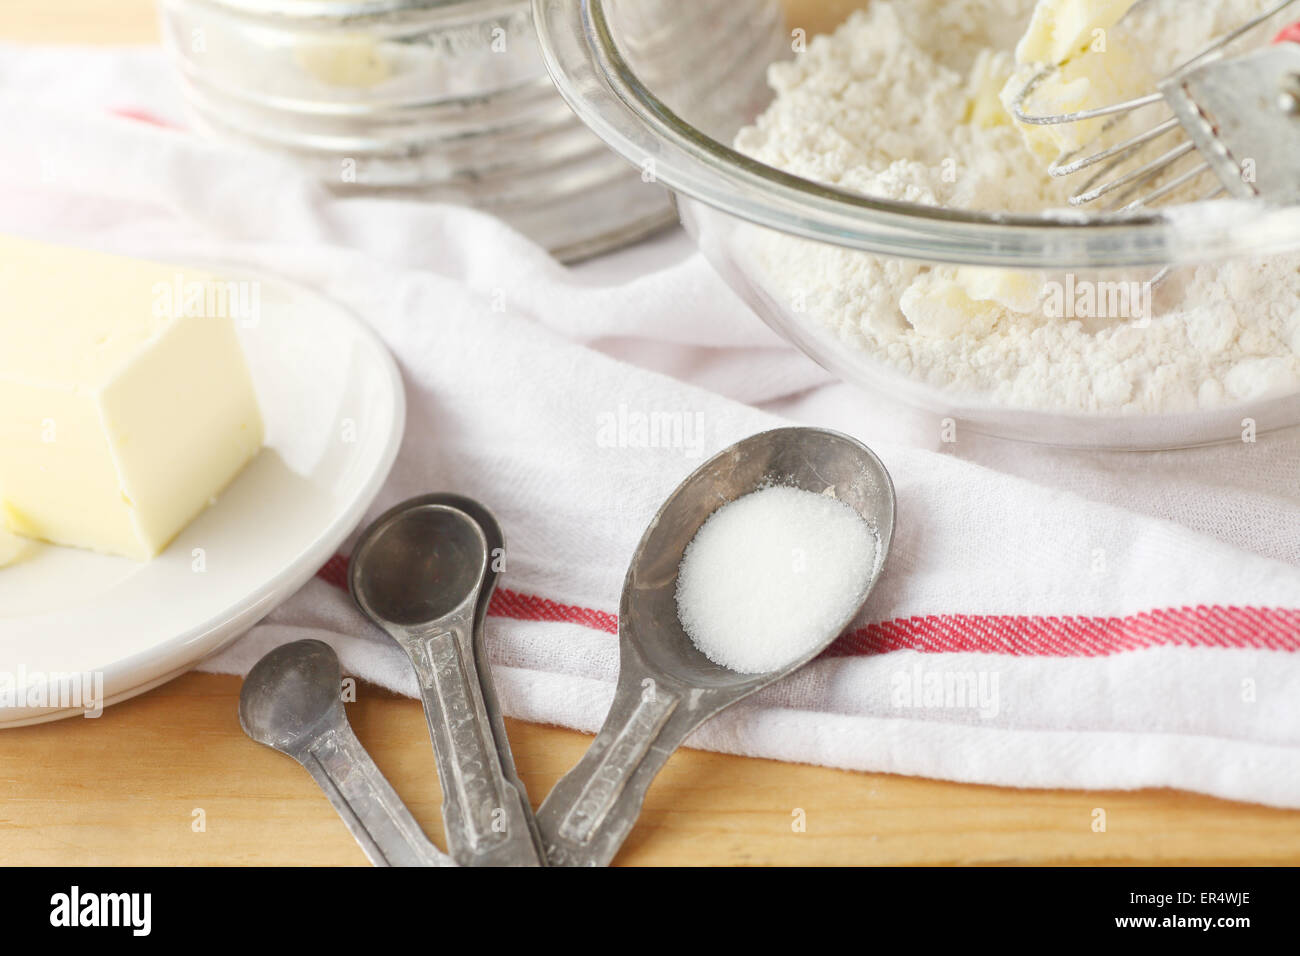 Mixing bowl with flour and butter, vintage sifter, measuring spoons and dish cloth - Stock Image